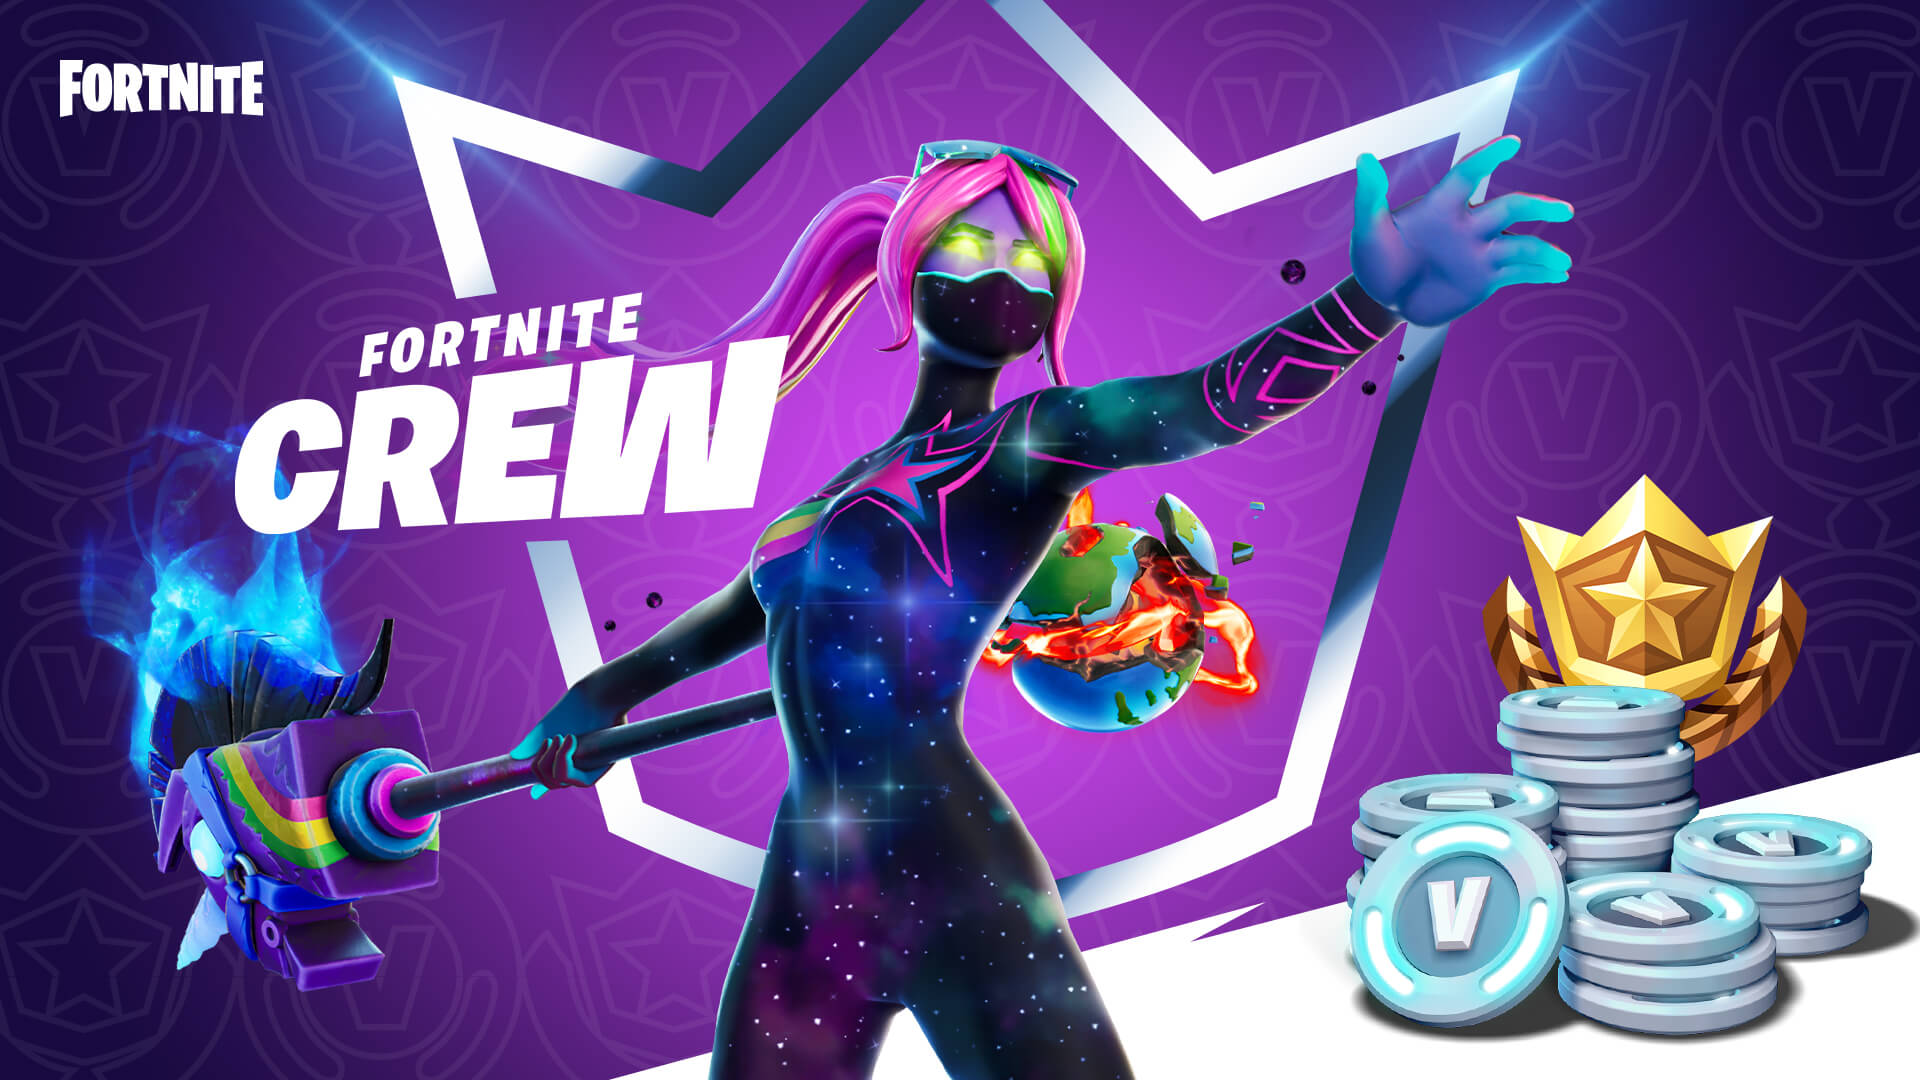 Fortnite Crew Subscription Service Offers Monthly Cosmetics And V Bucks Shacknews Tons of awesome fortnite logo wallpapers to download for free. fortnite crew subscription service